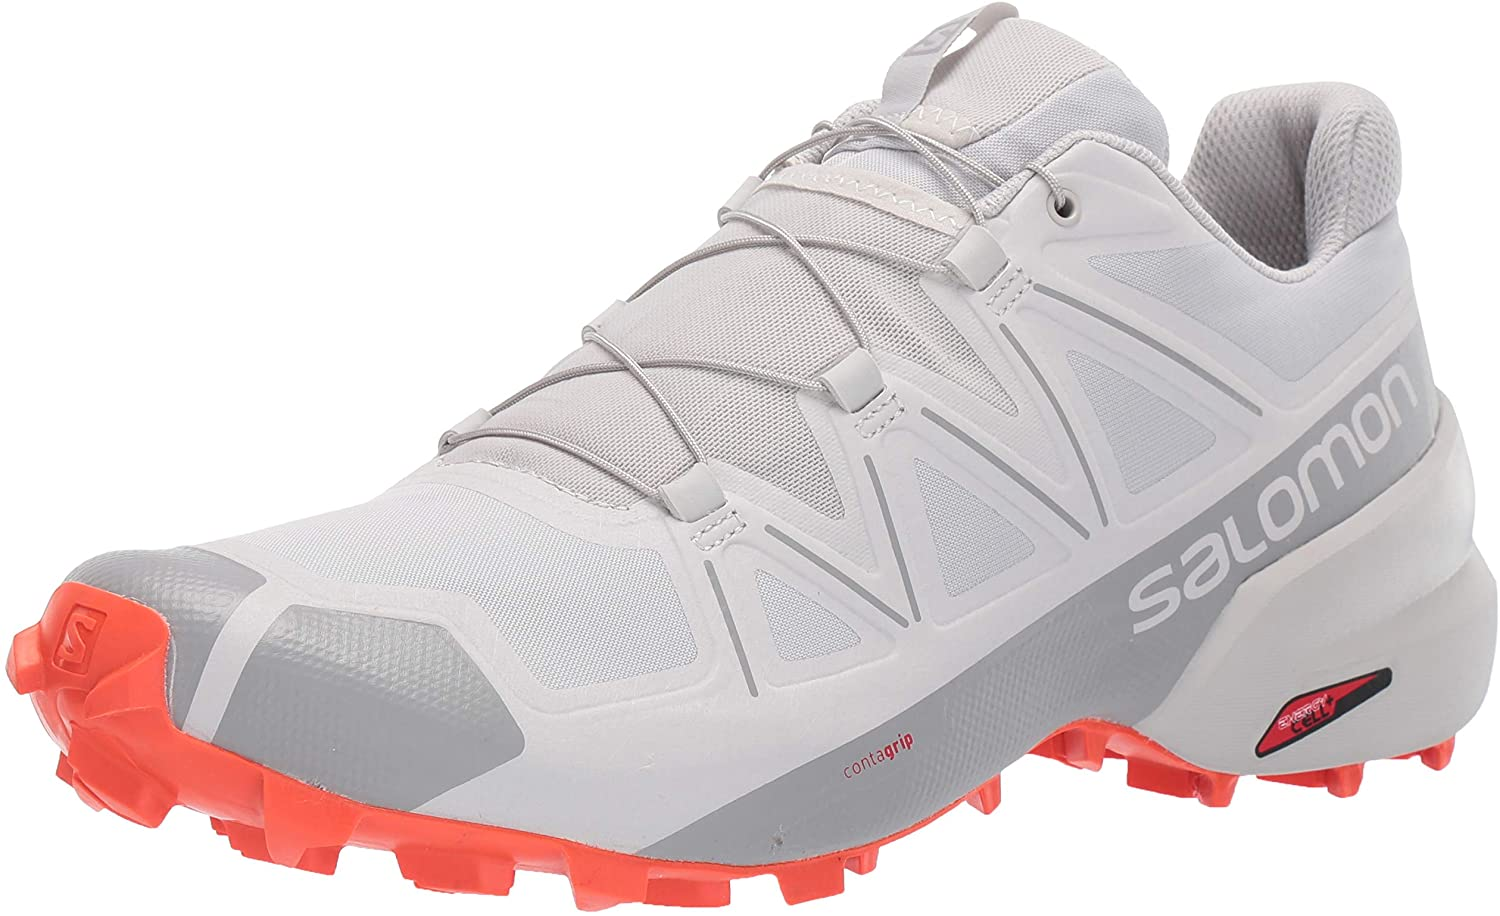 Zapatillas Salomon Speedcross 5 Blanco